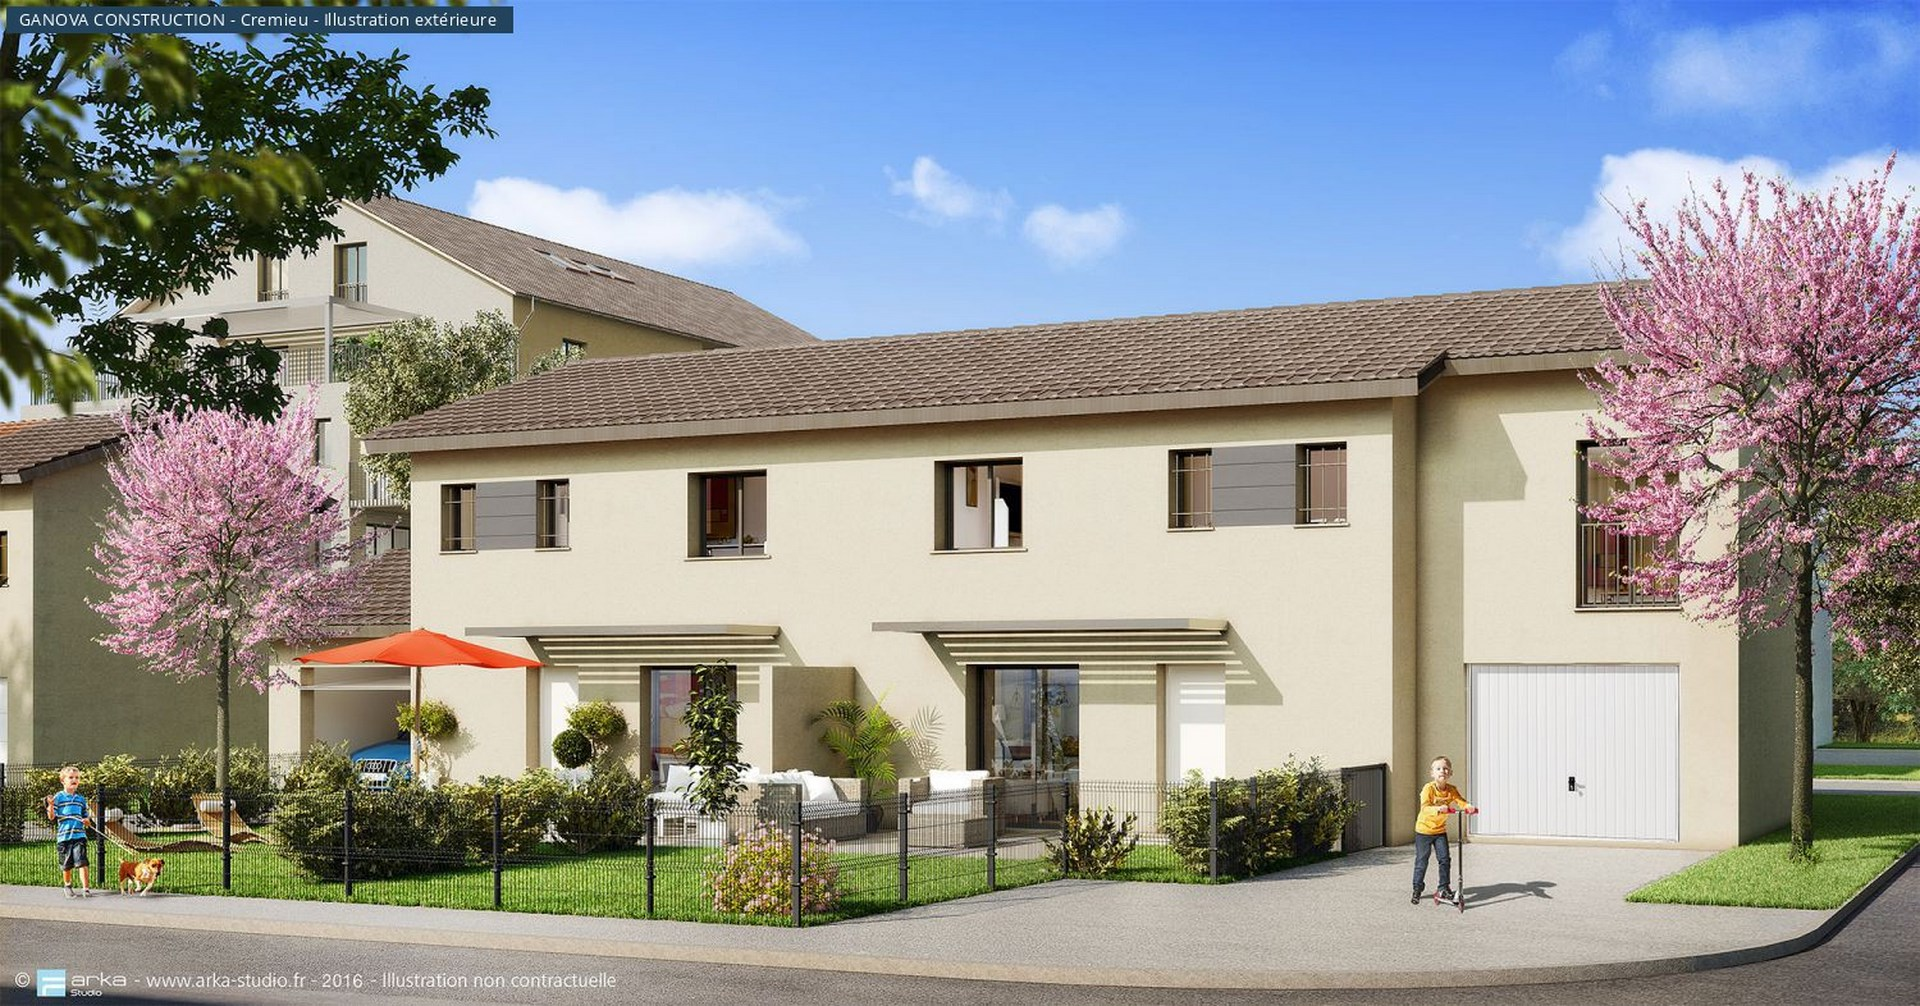 Prix construction maison contemporaine m2 menuiserie for Prix metre carre construction maison